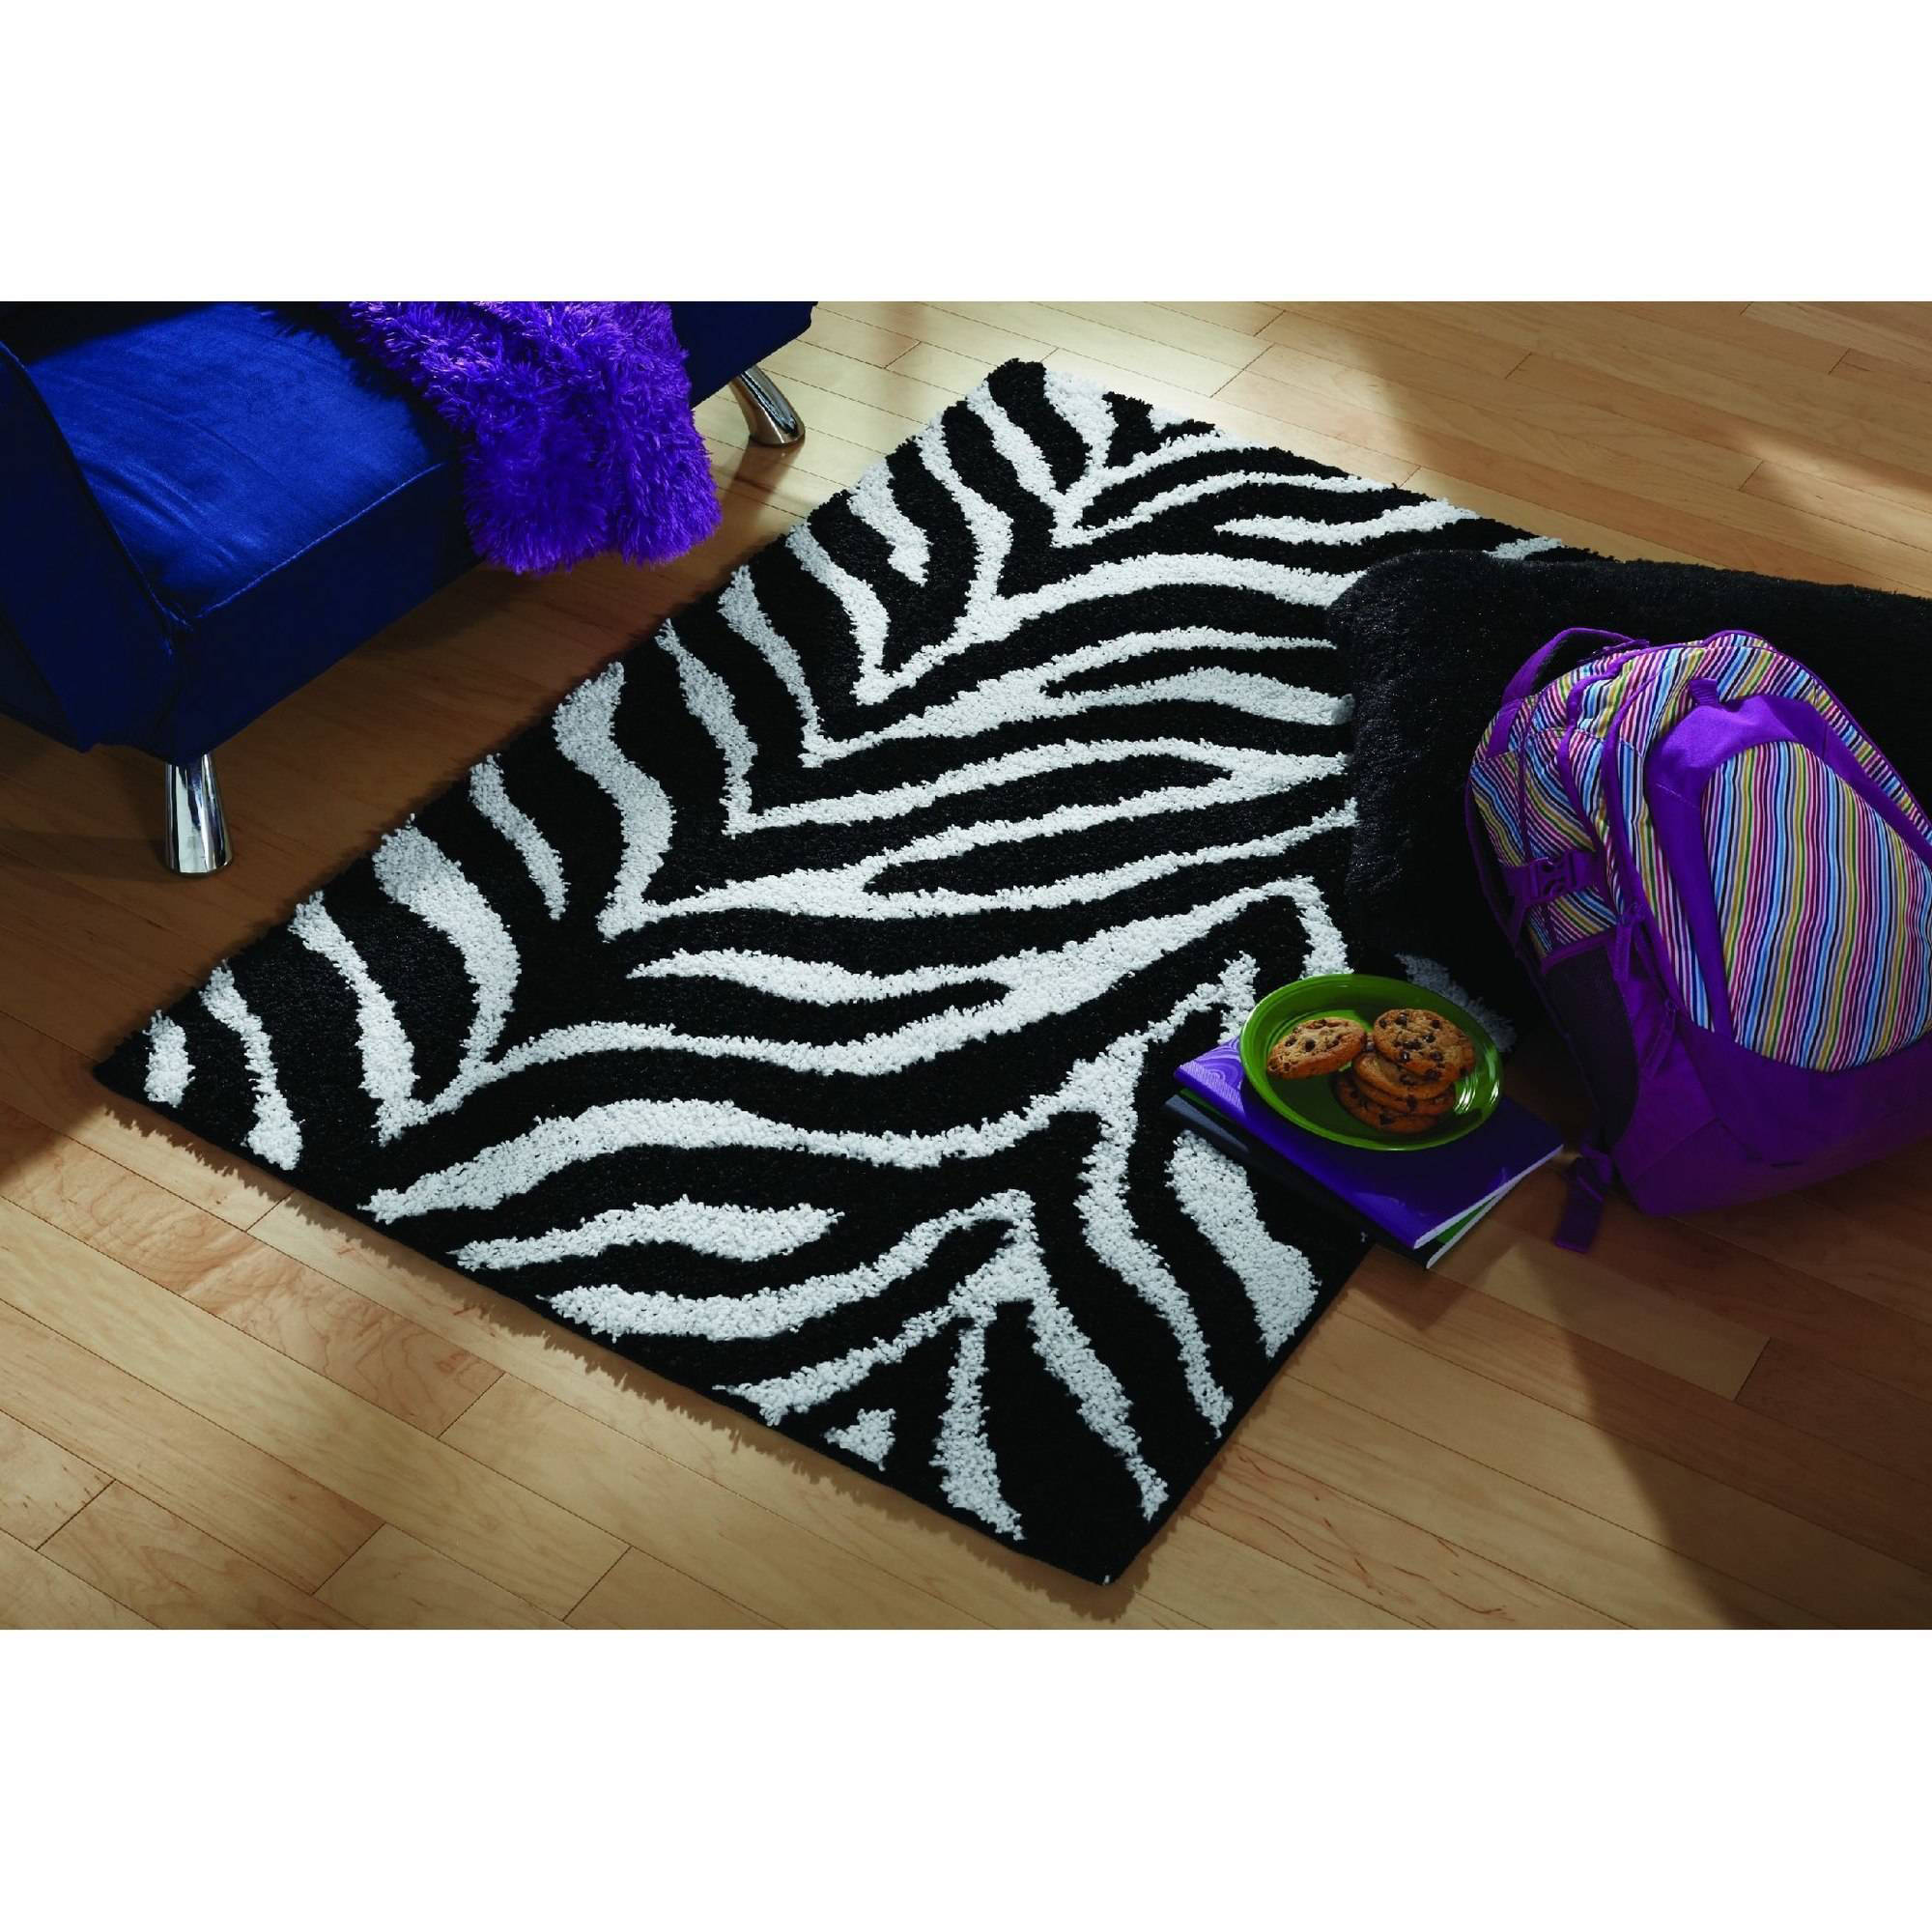 Your Zone Zebra Shag Olefin Rug, Black and White